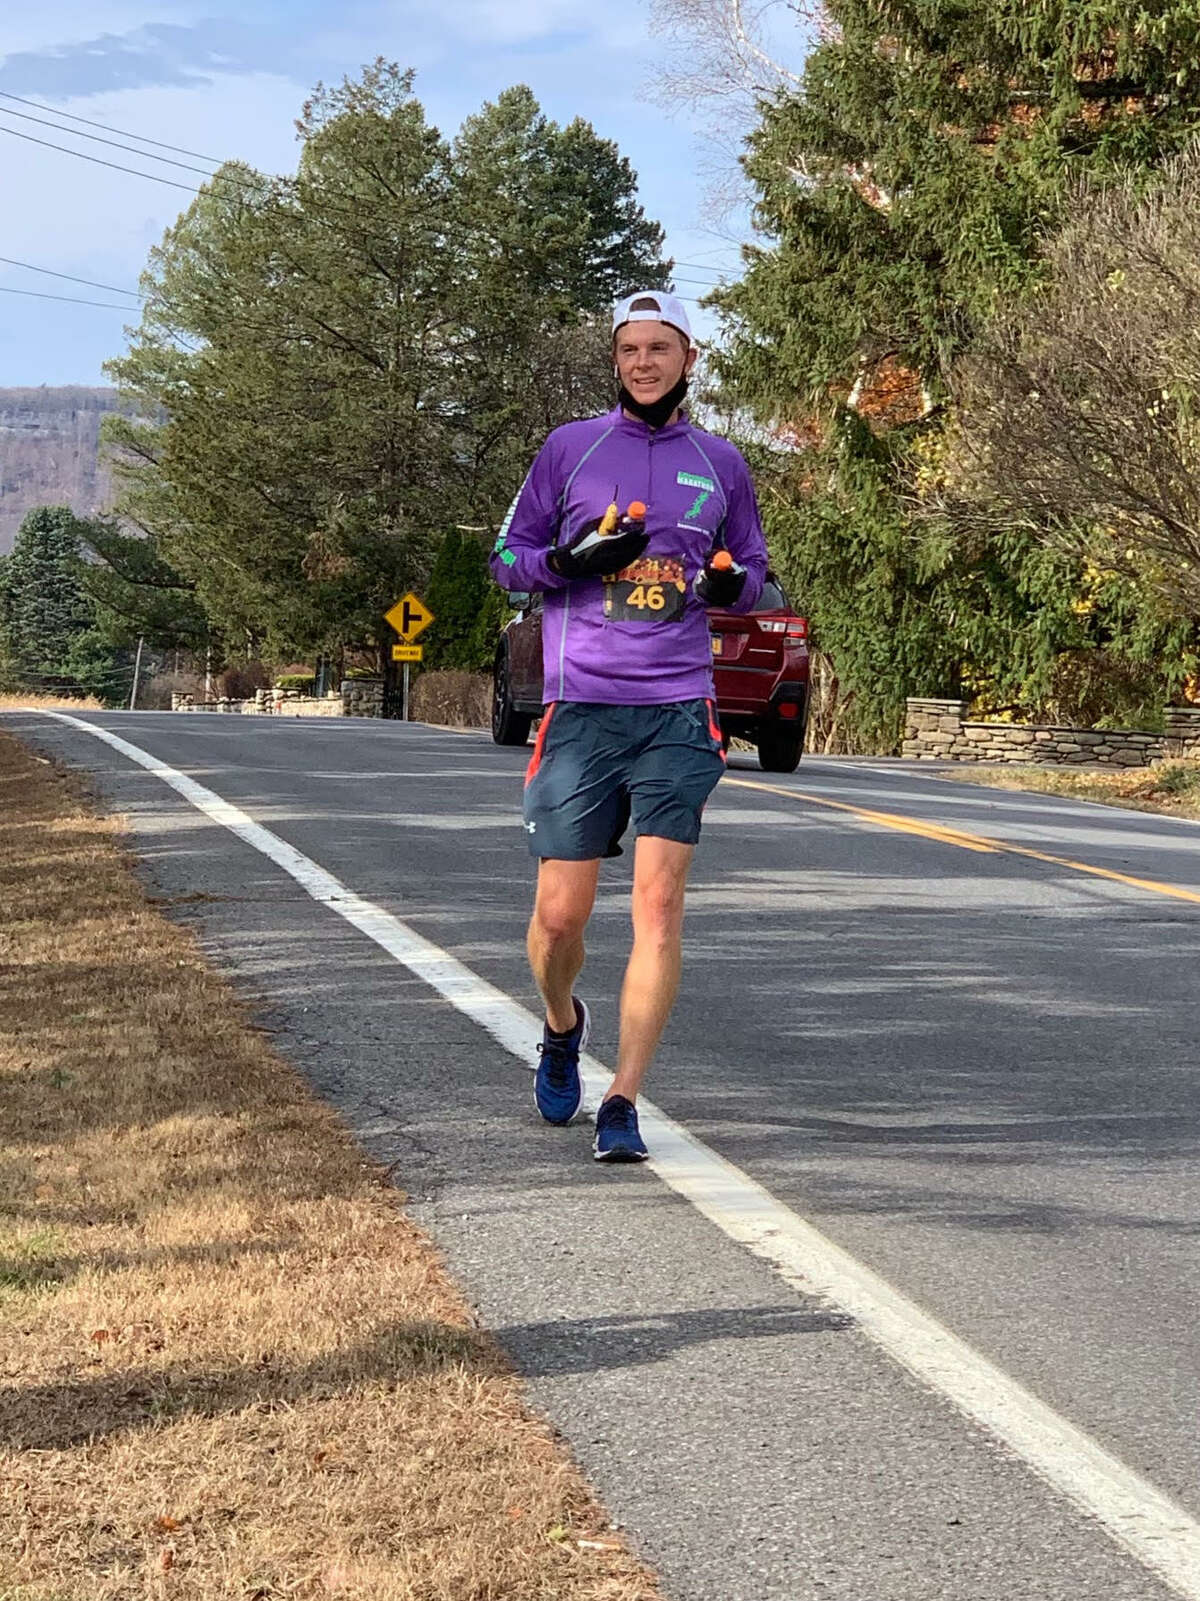 Venter has been training for his 40mile run since March. (Credits: Ryan Venter)